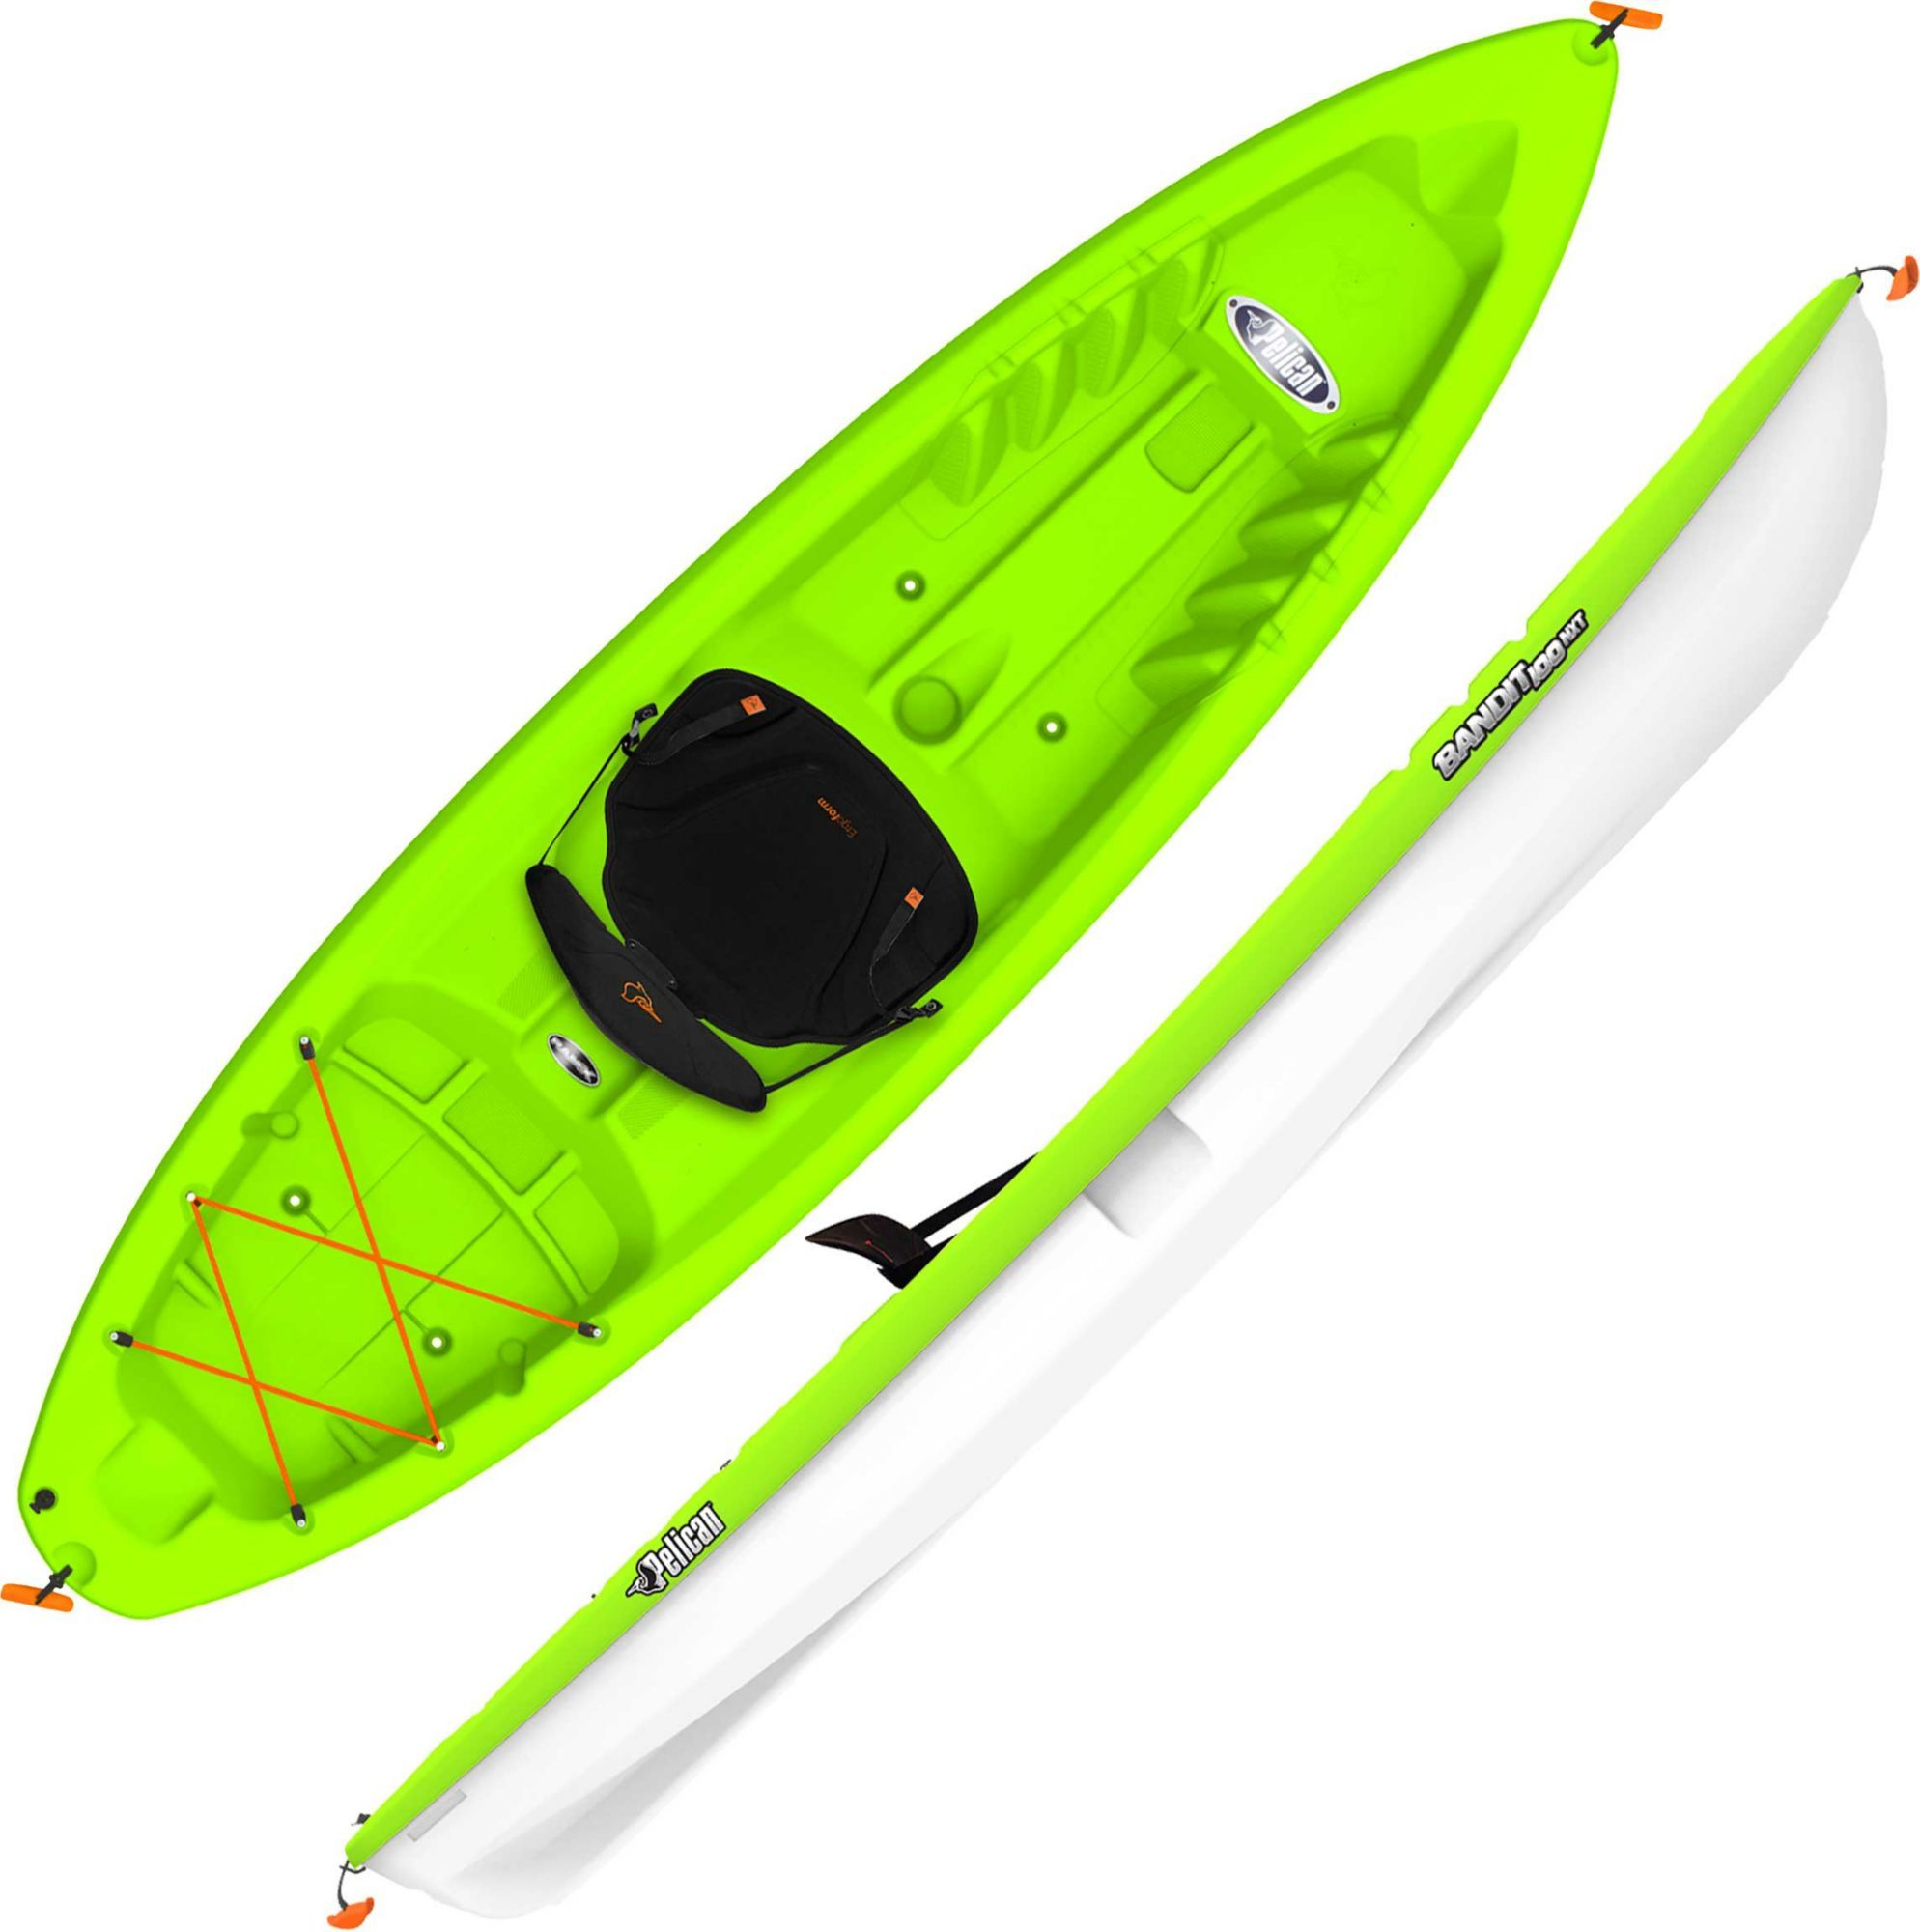 Pelican Bandit NXT 100 Kayak | Products | Kayaking, Recreational